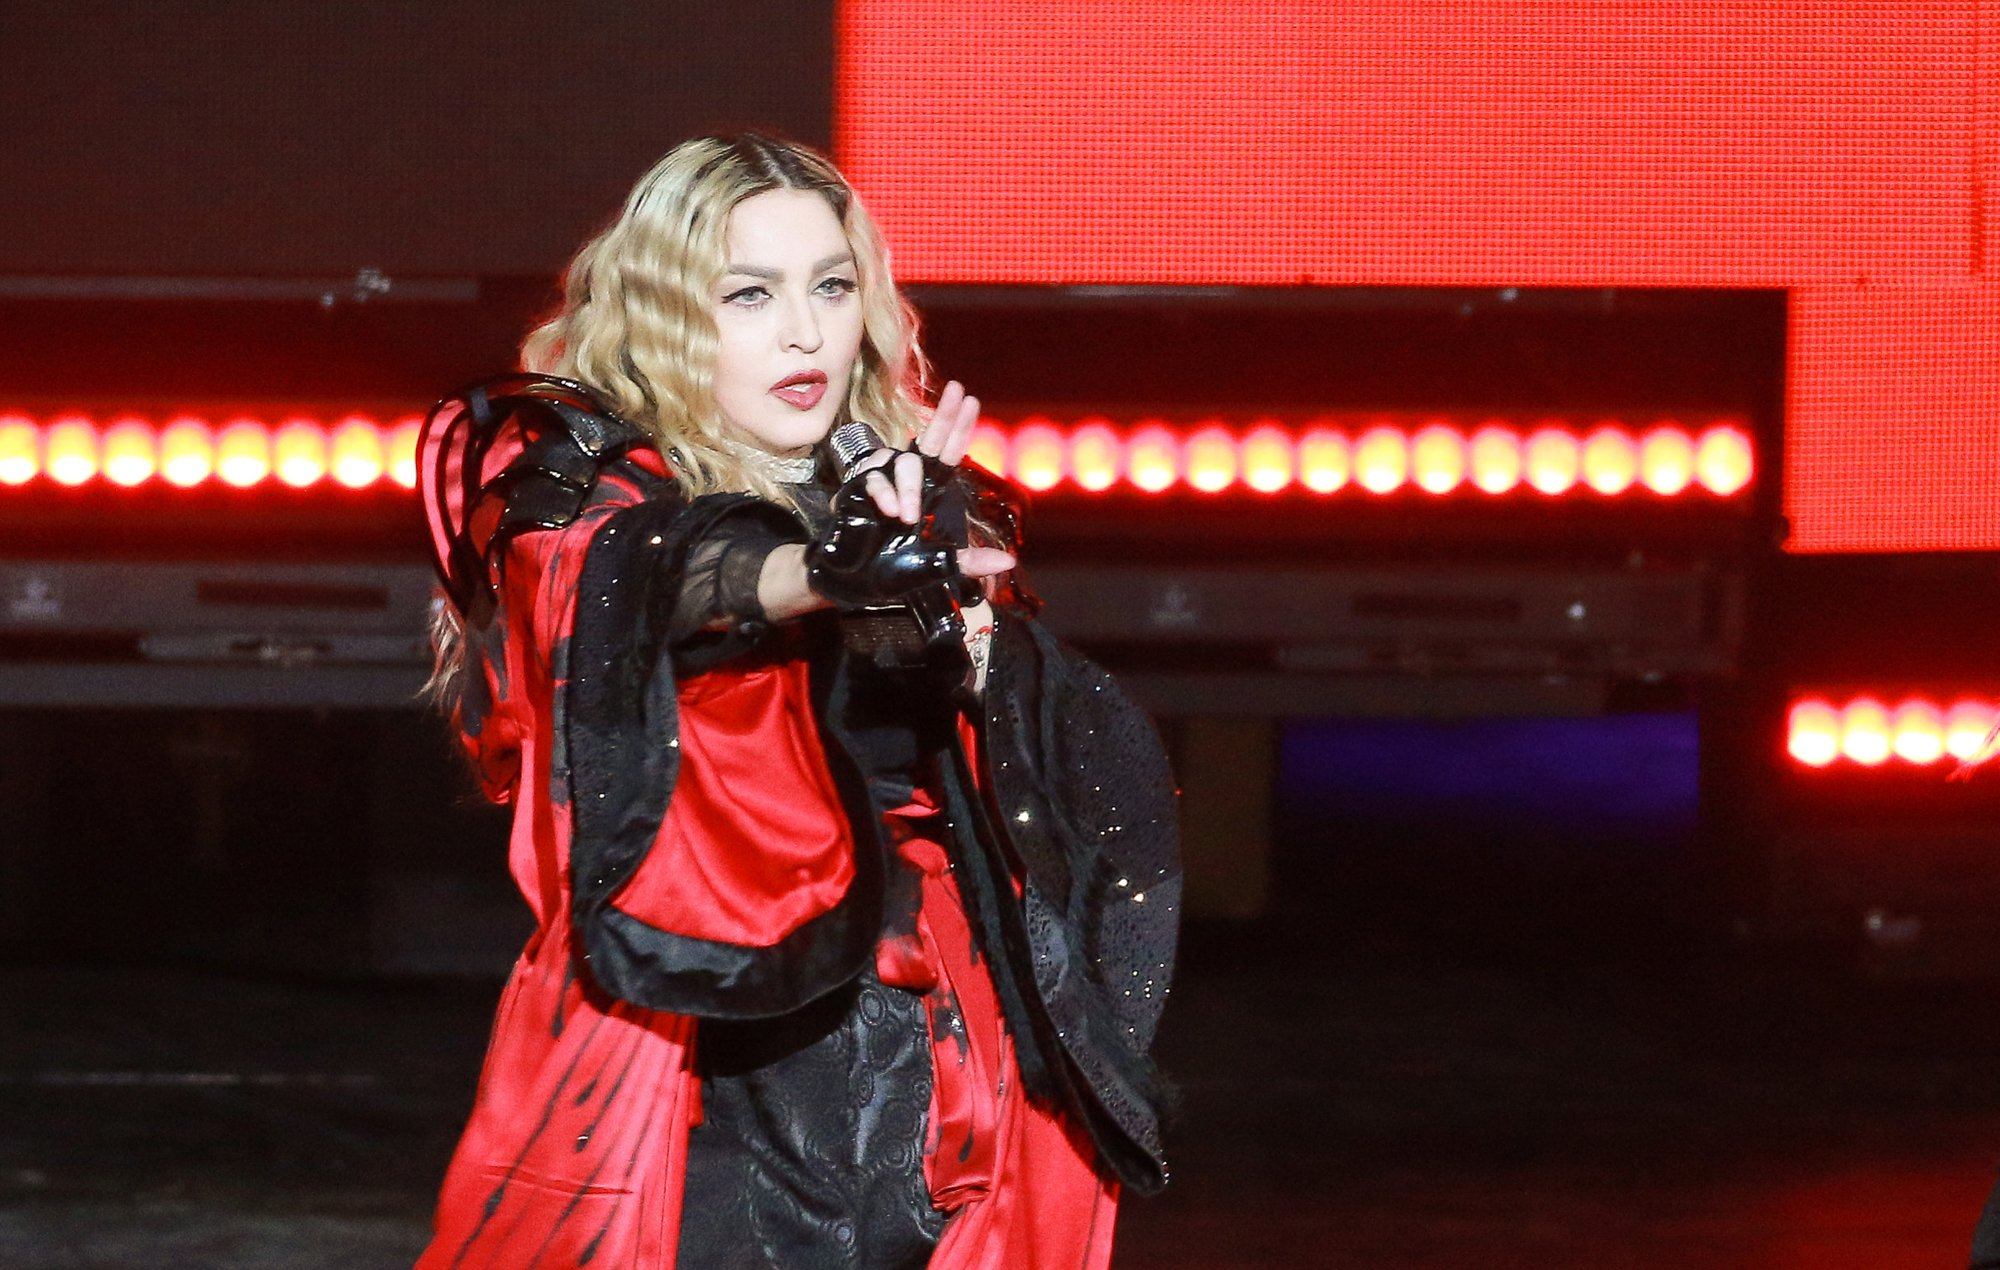 .@Madonna finally confirms new album 'Madame X' after weeks of teasers https://t.co/bGOFUPkhB7 https://t.co/9v0B358tvh